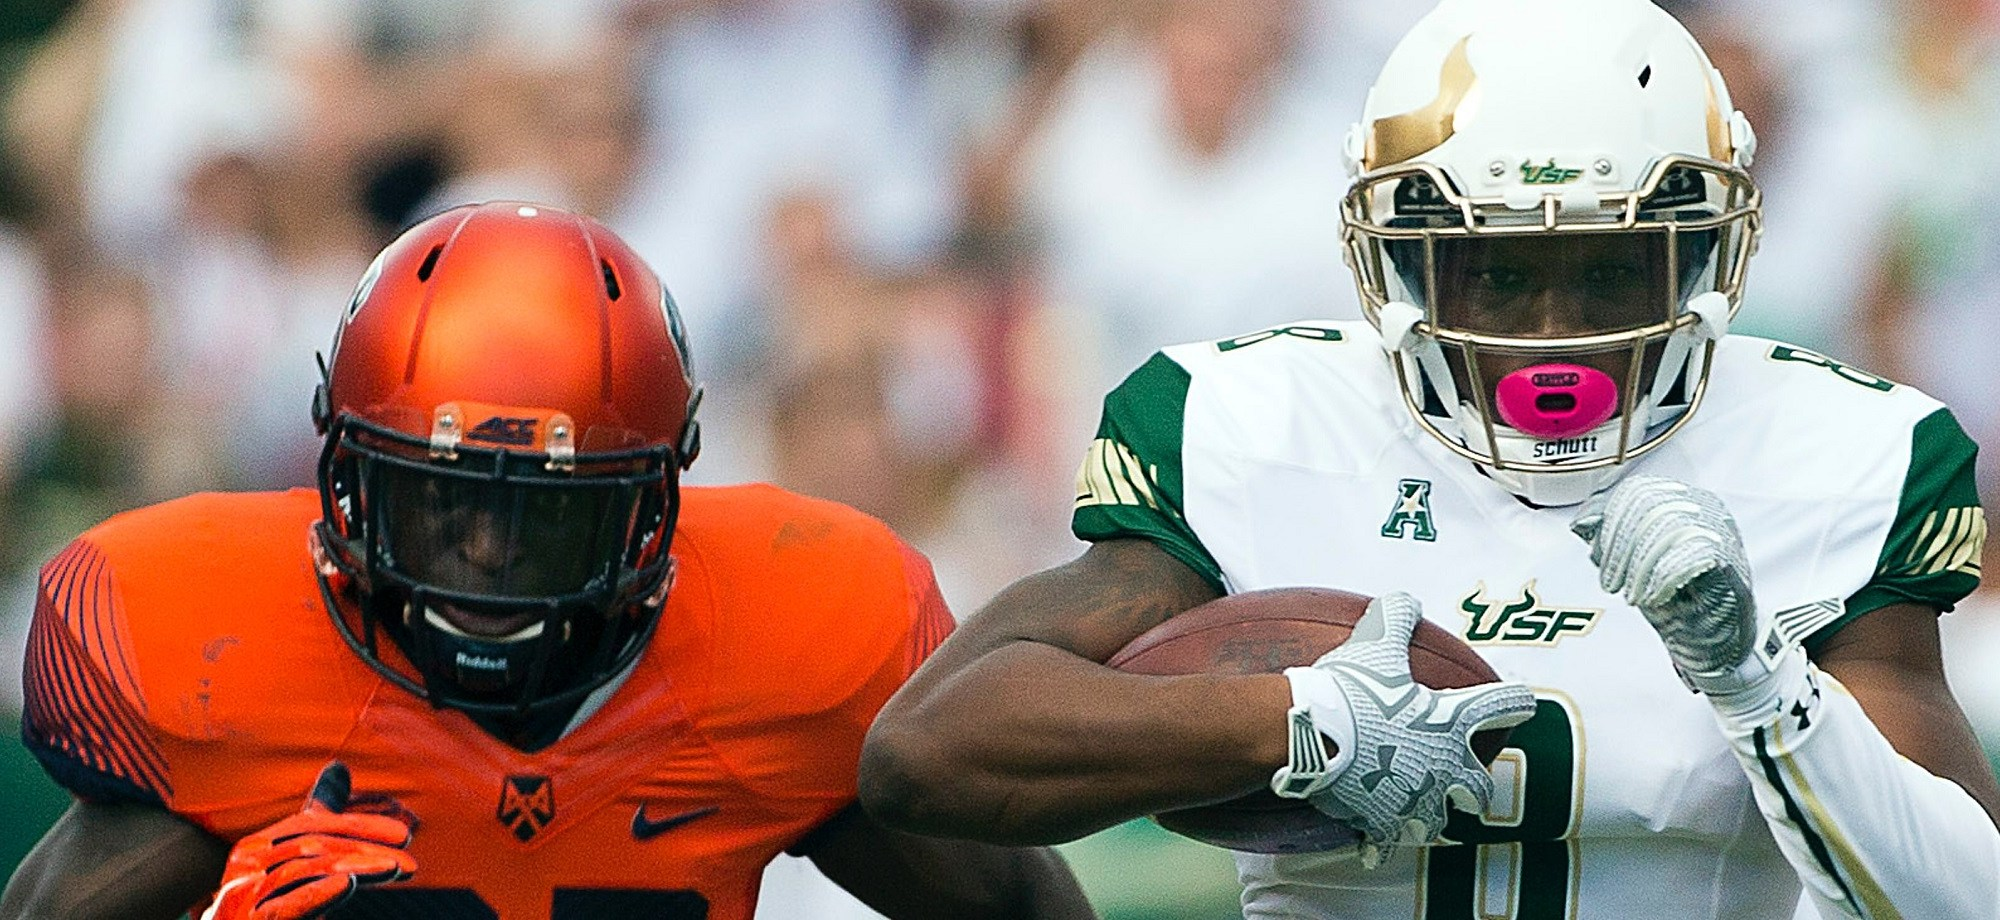 The Birth of #Ocho: USF WR Tyre McCants First Big Play as a Bull vs. Syracuse 2015 Article Featured Image | SoFloBulls.com